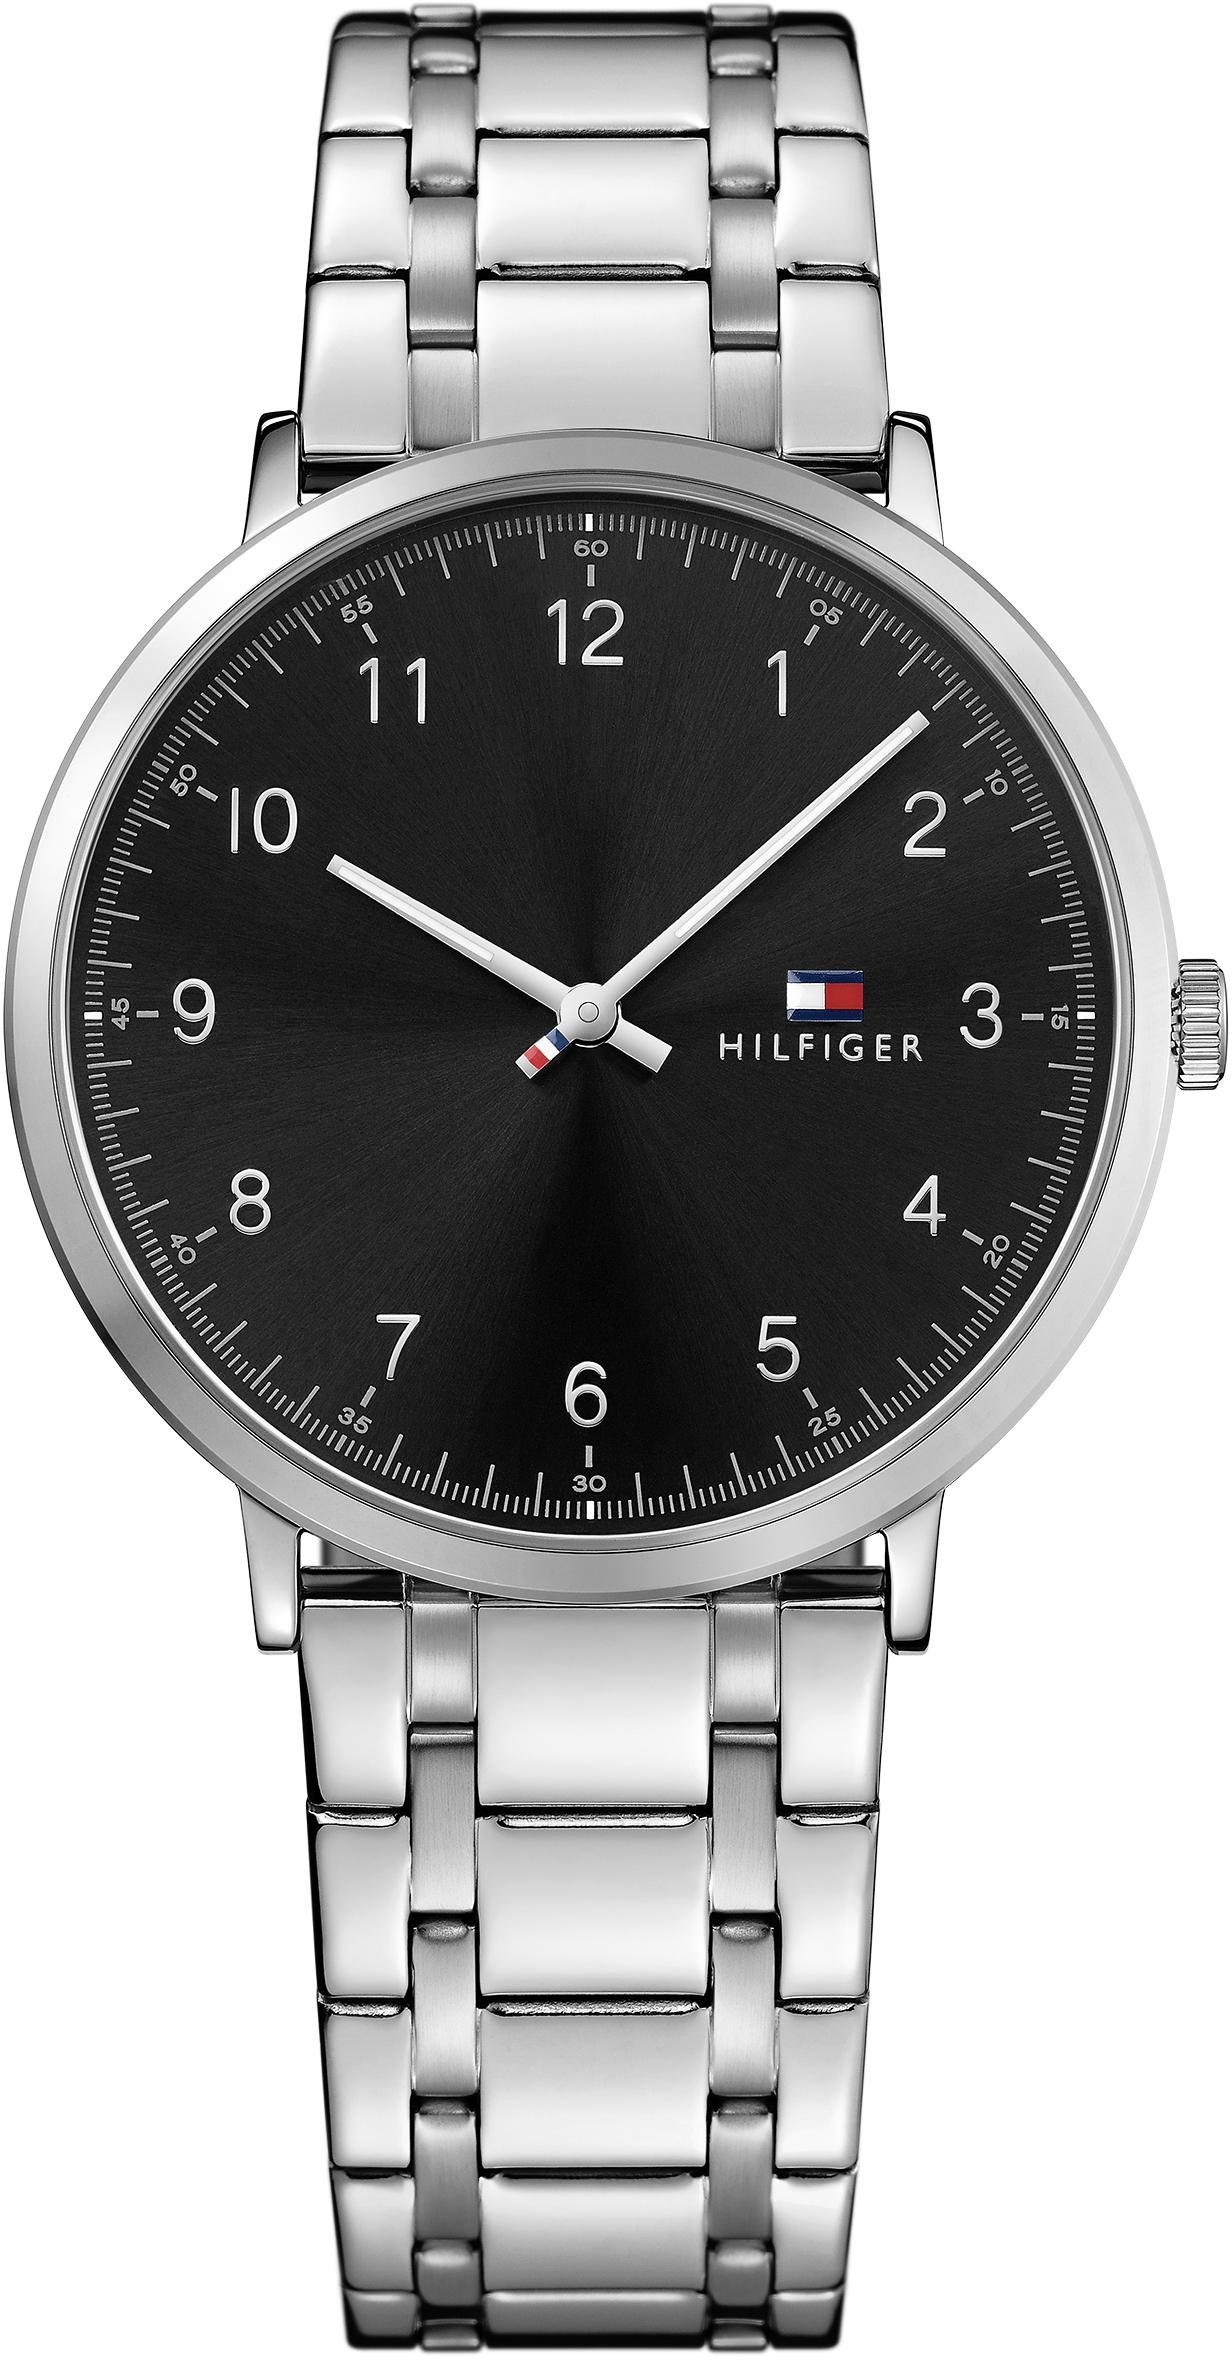 Tommy Hilfiger Quarzuhr »Sophisticated Sport, 1791336«